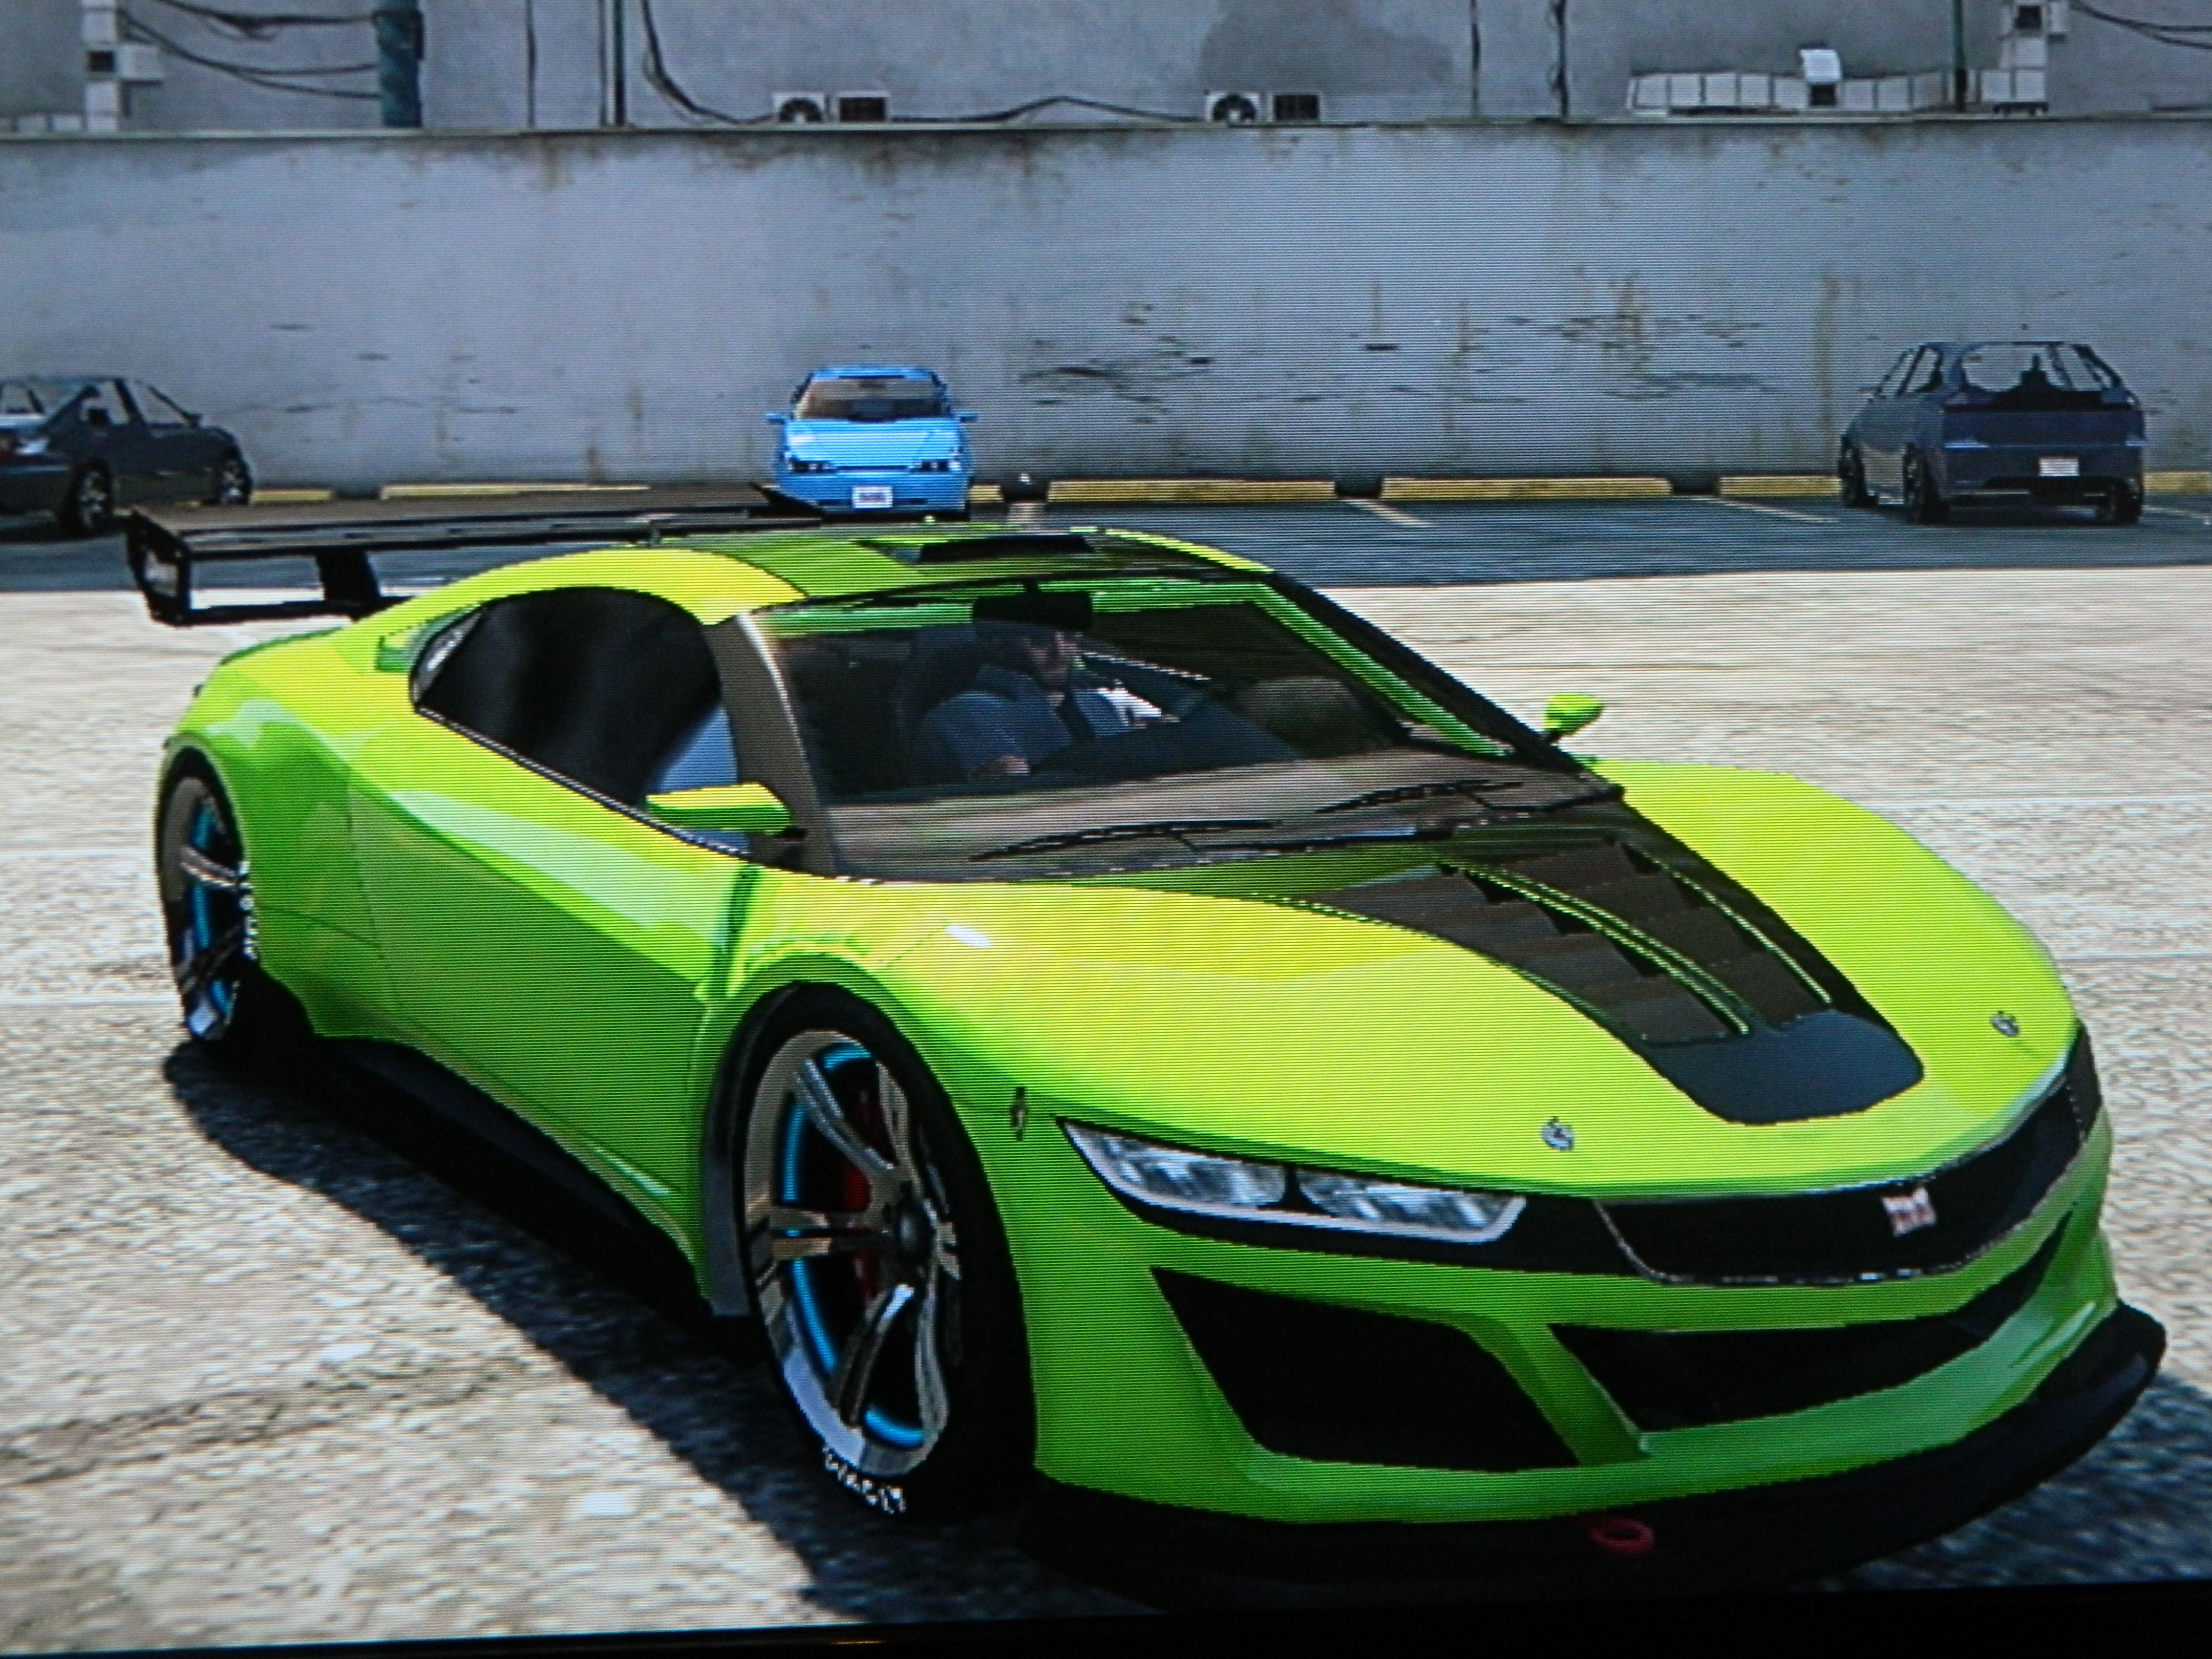 The Jester Gta V With Images Gta Cars Gta Car